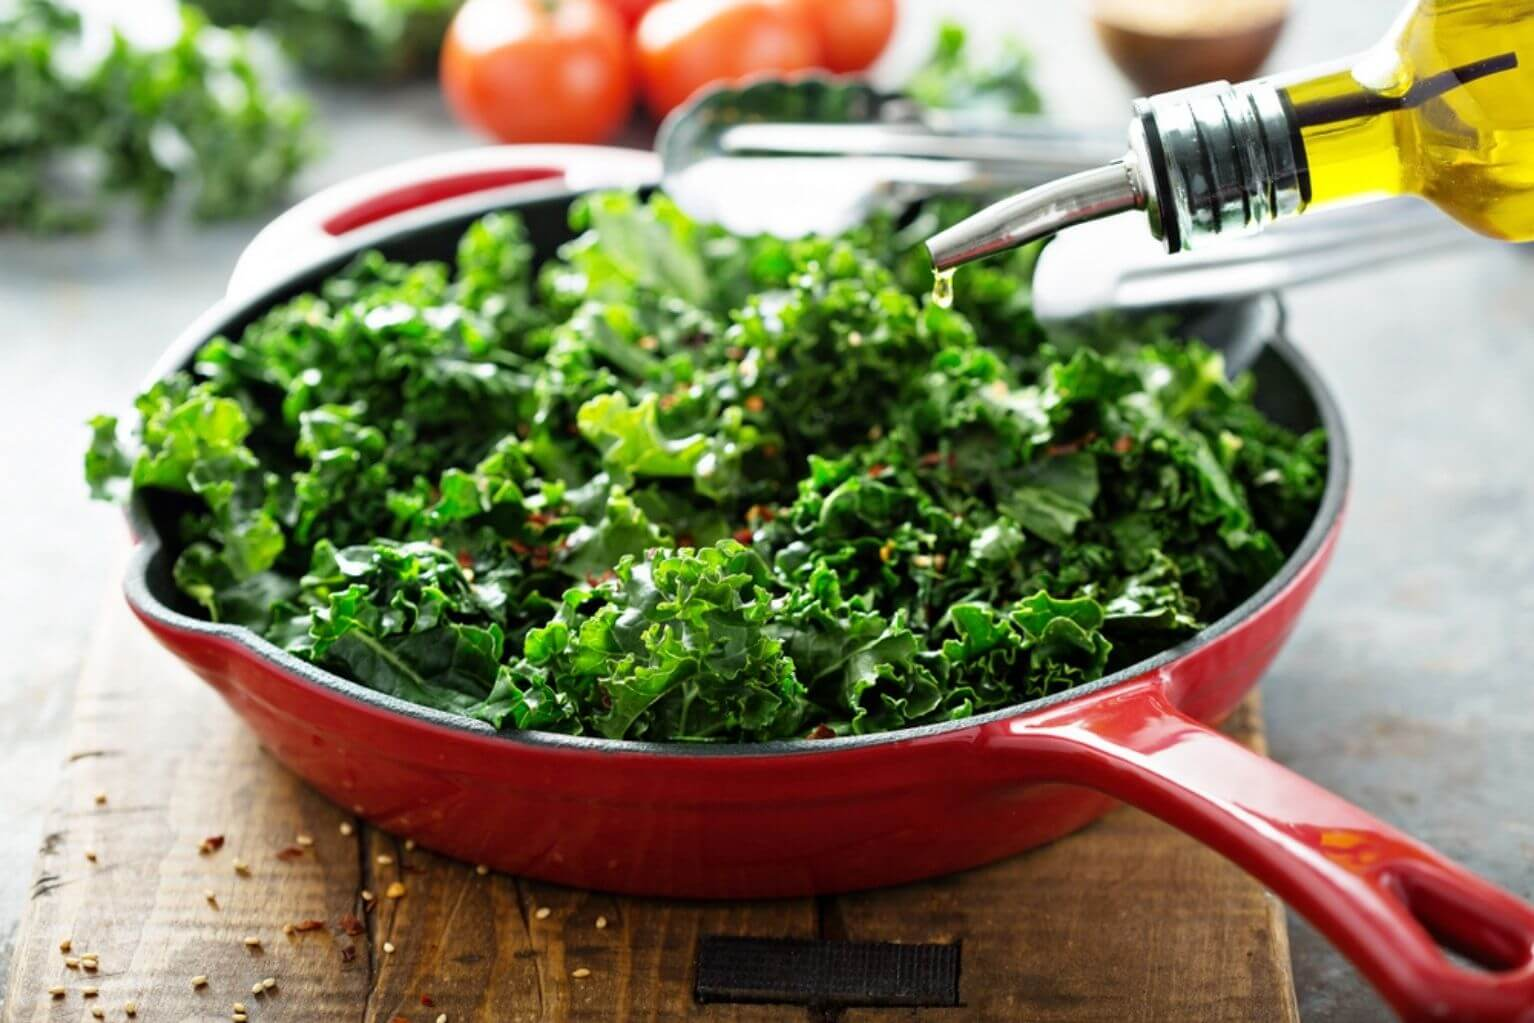 Red skillet filled with kale on top of a wooden board being drizzled with olive oil.